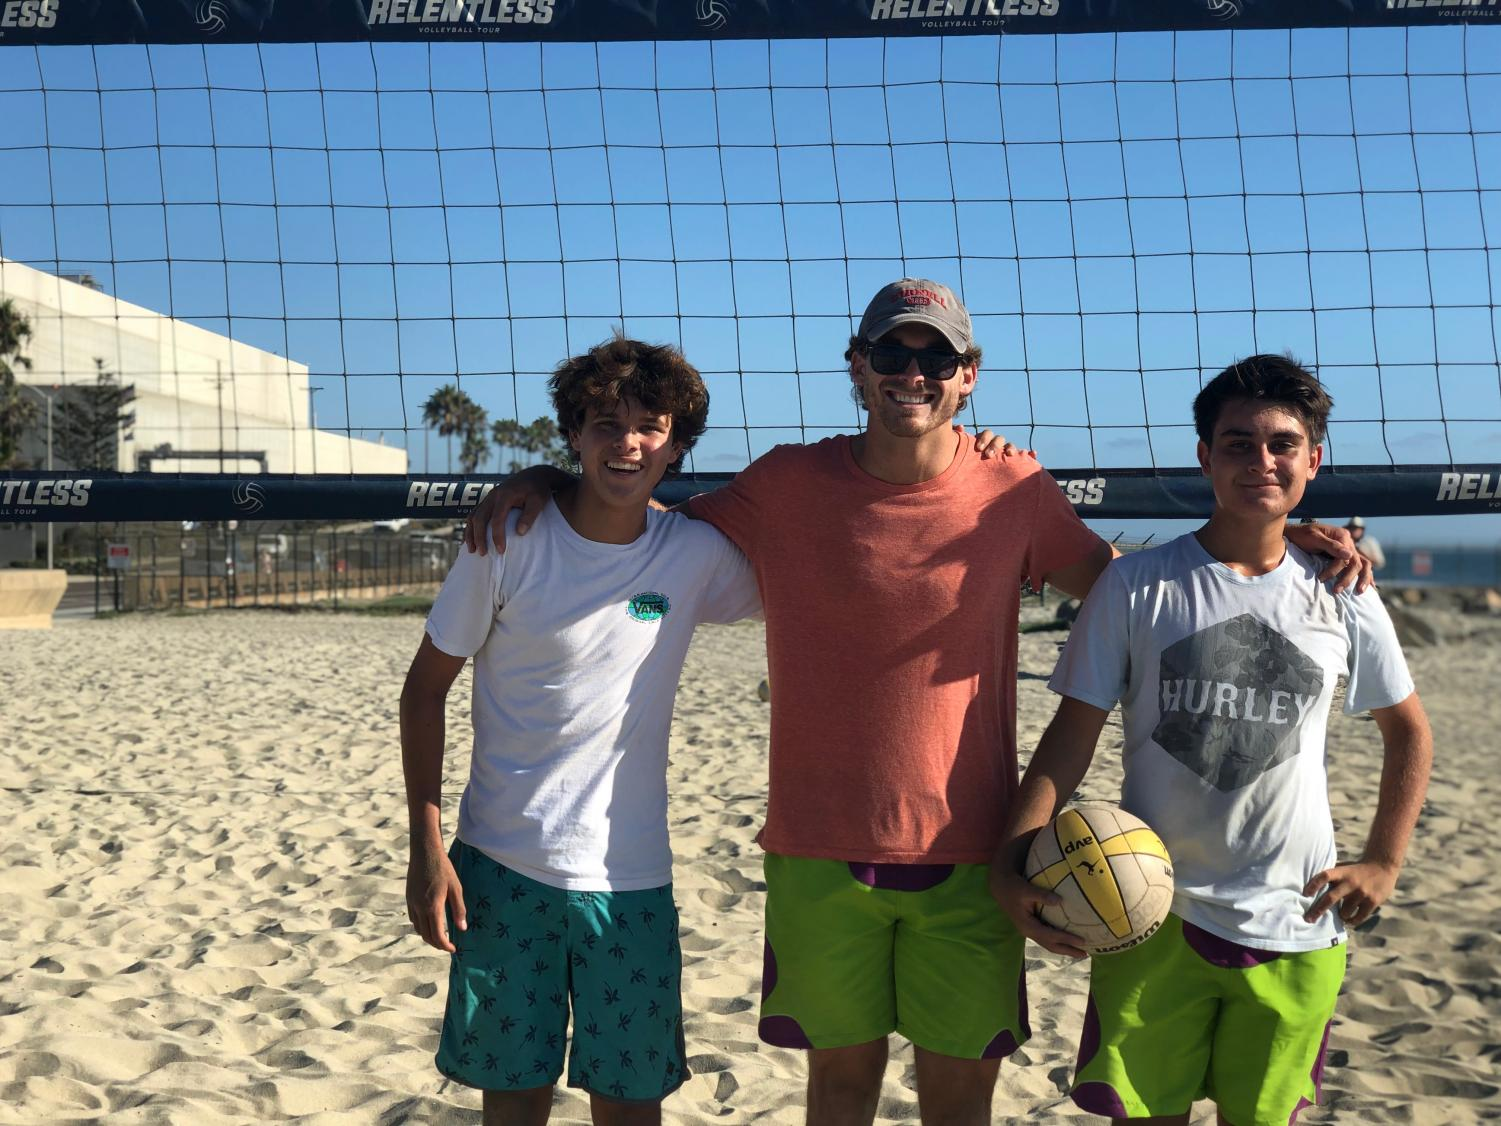 The+boys+beach+volleyball+coach+helps+critique+sophomore+Josh+Lintner+and+sophomore+Shawheen+Fahr+after+their+close+loss+against+Carlsbad+High+School.+They+participated+in+this+scrimmage+on+Tuesday%2C+Sept.+17+and+are+focused+on+improving+for+upcoming+games.